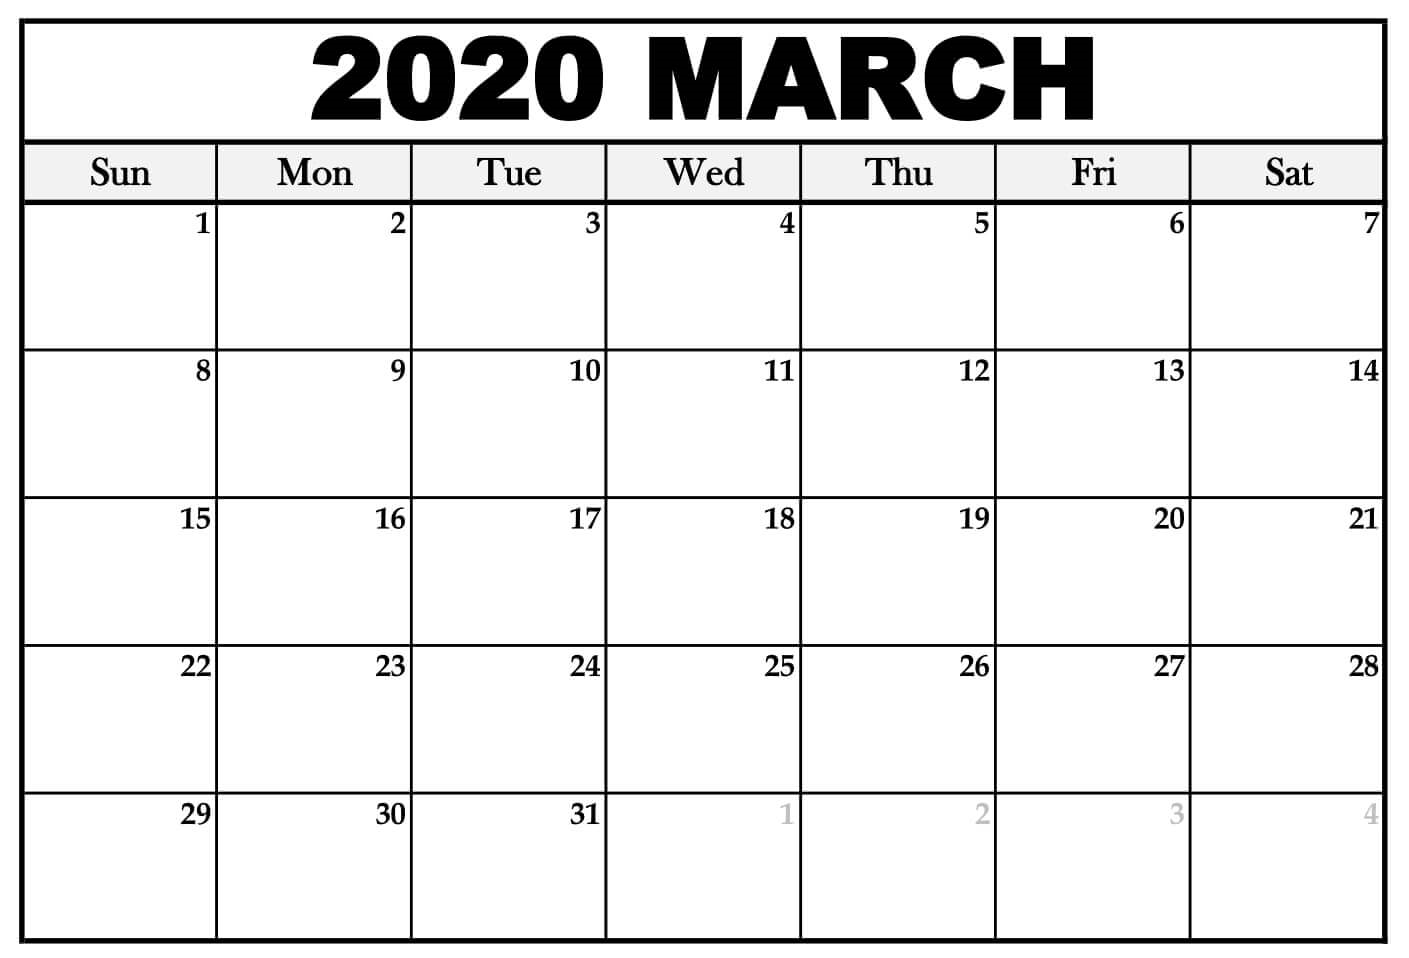 March 2020 Calendar Template With Holidays